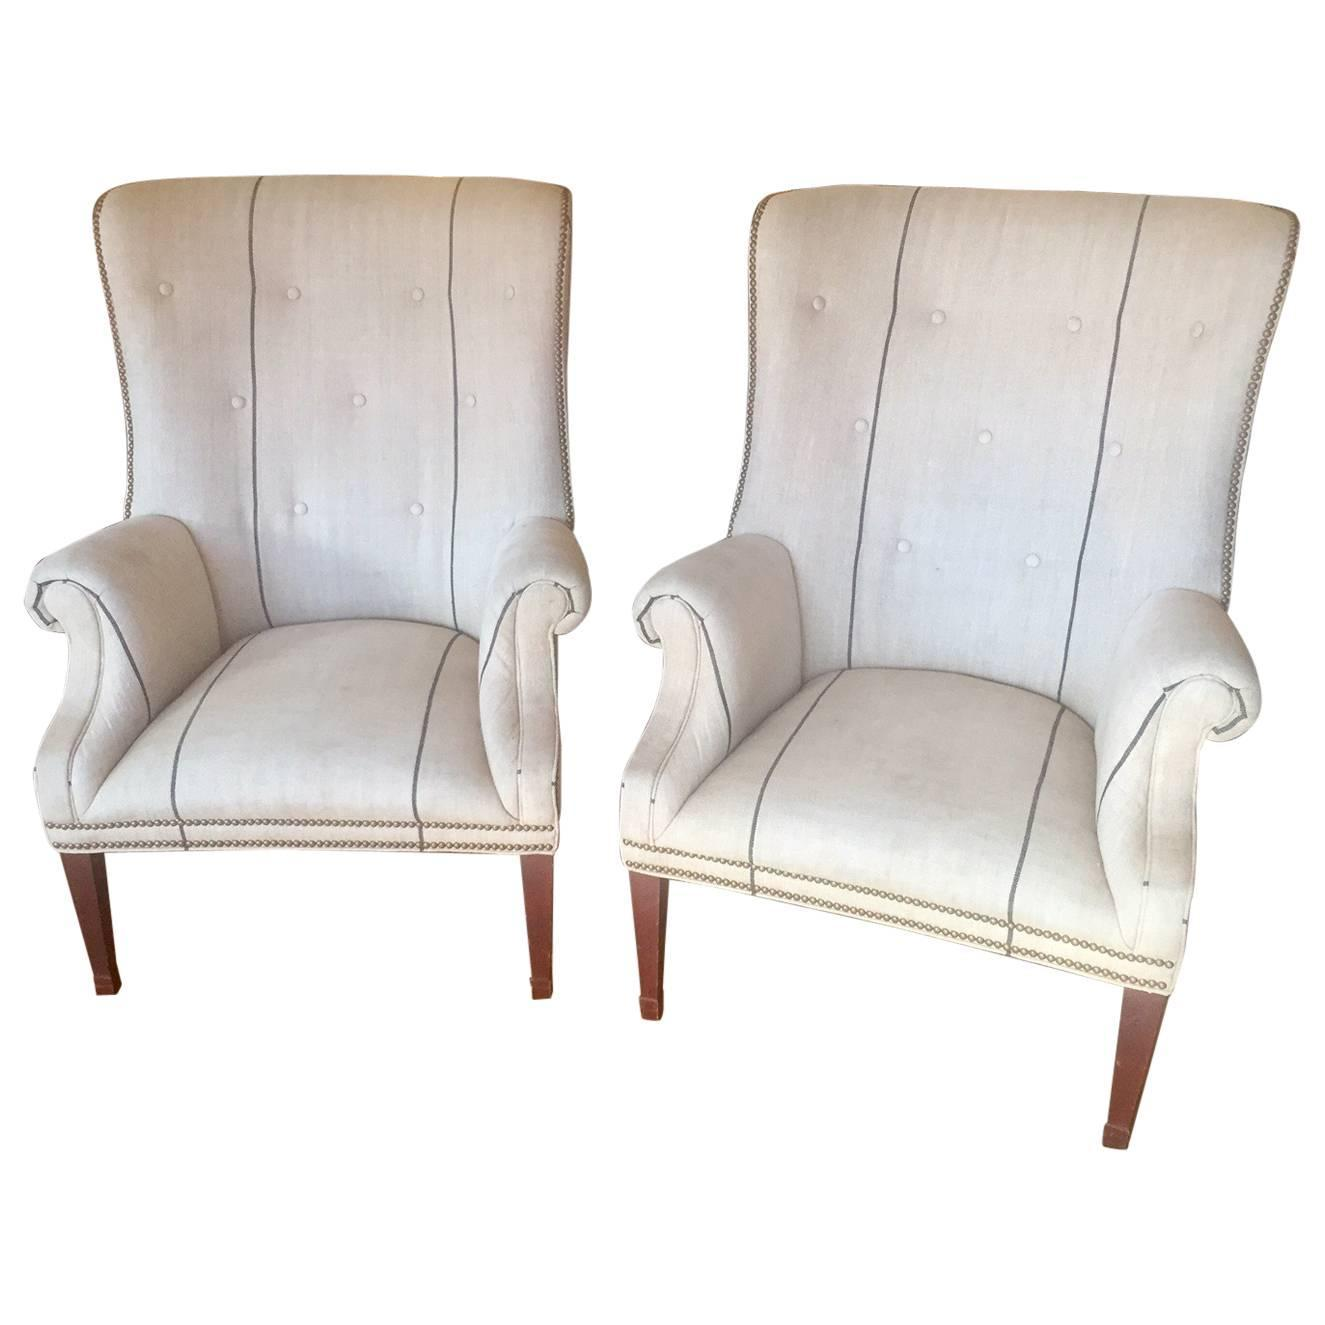 how to clean belgian linen sofa brown leather under 500 pair of classic ralph lauren tub chairs in